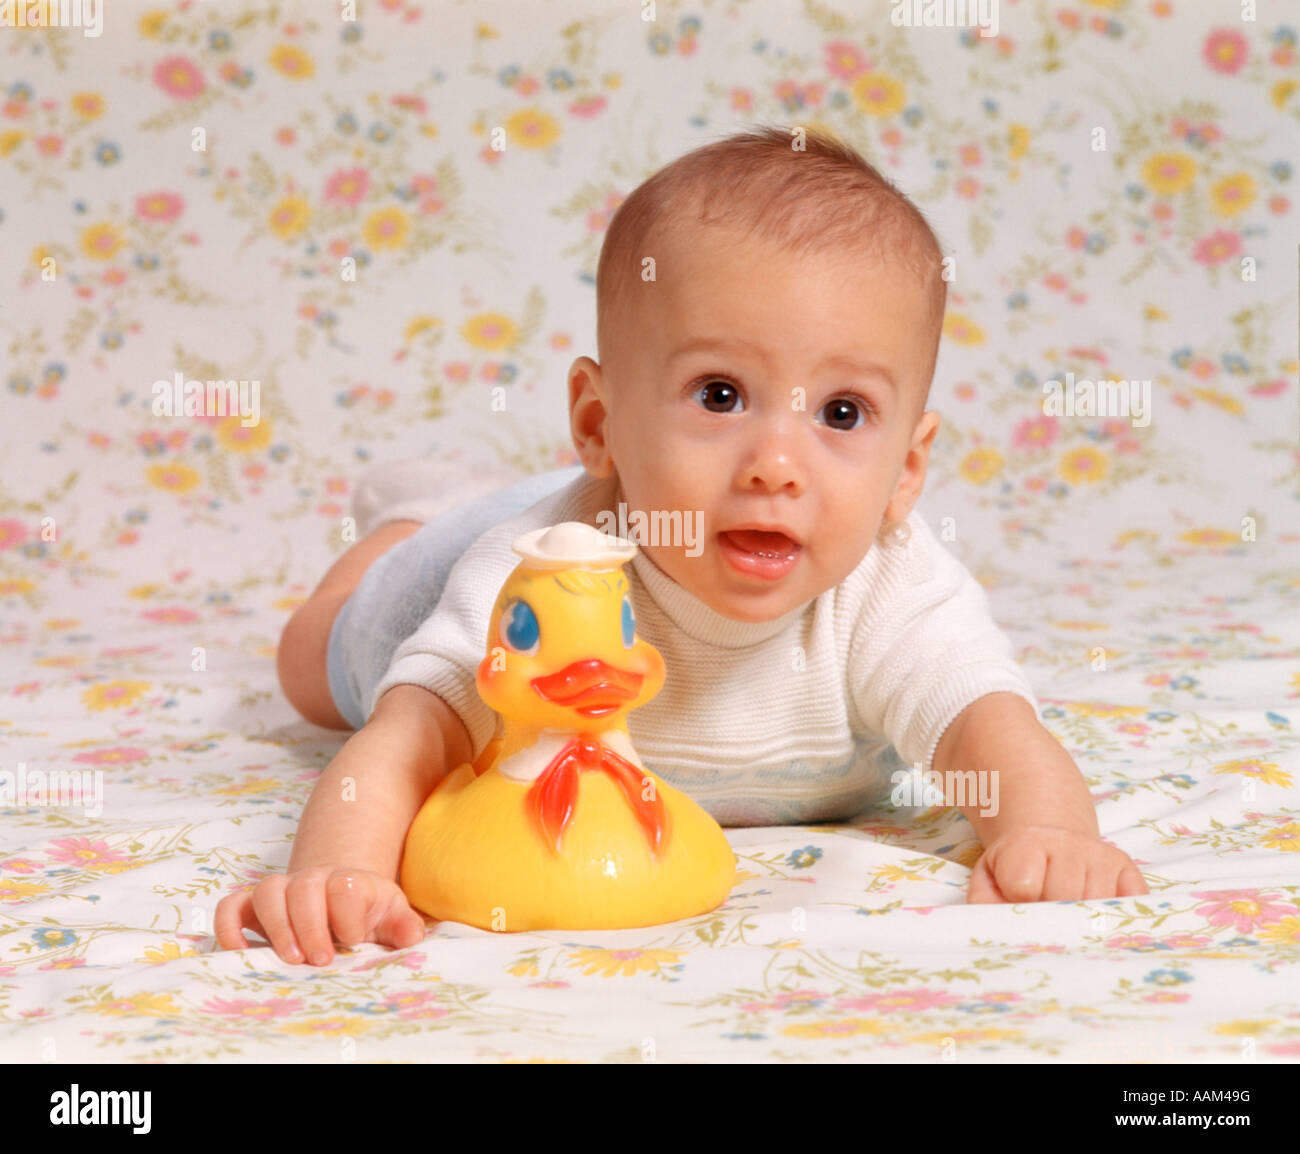 1970s BABY BOY WITH RUBBER DUCKY - Stock Image